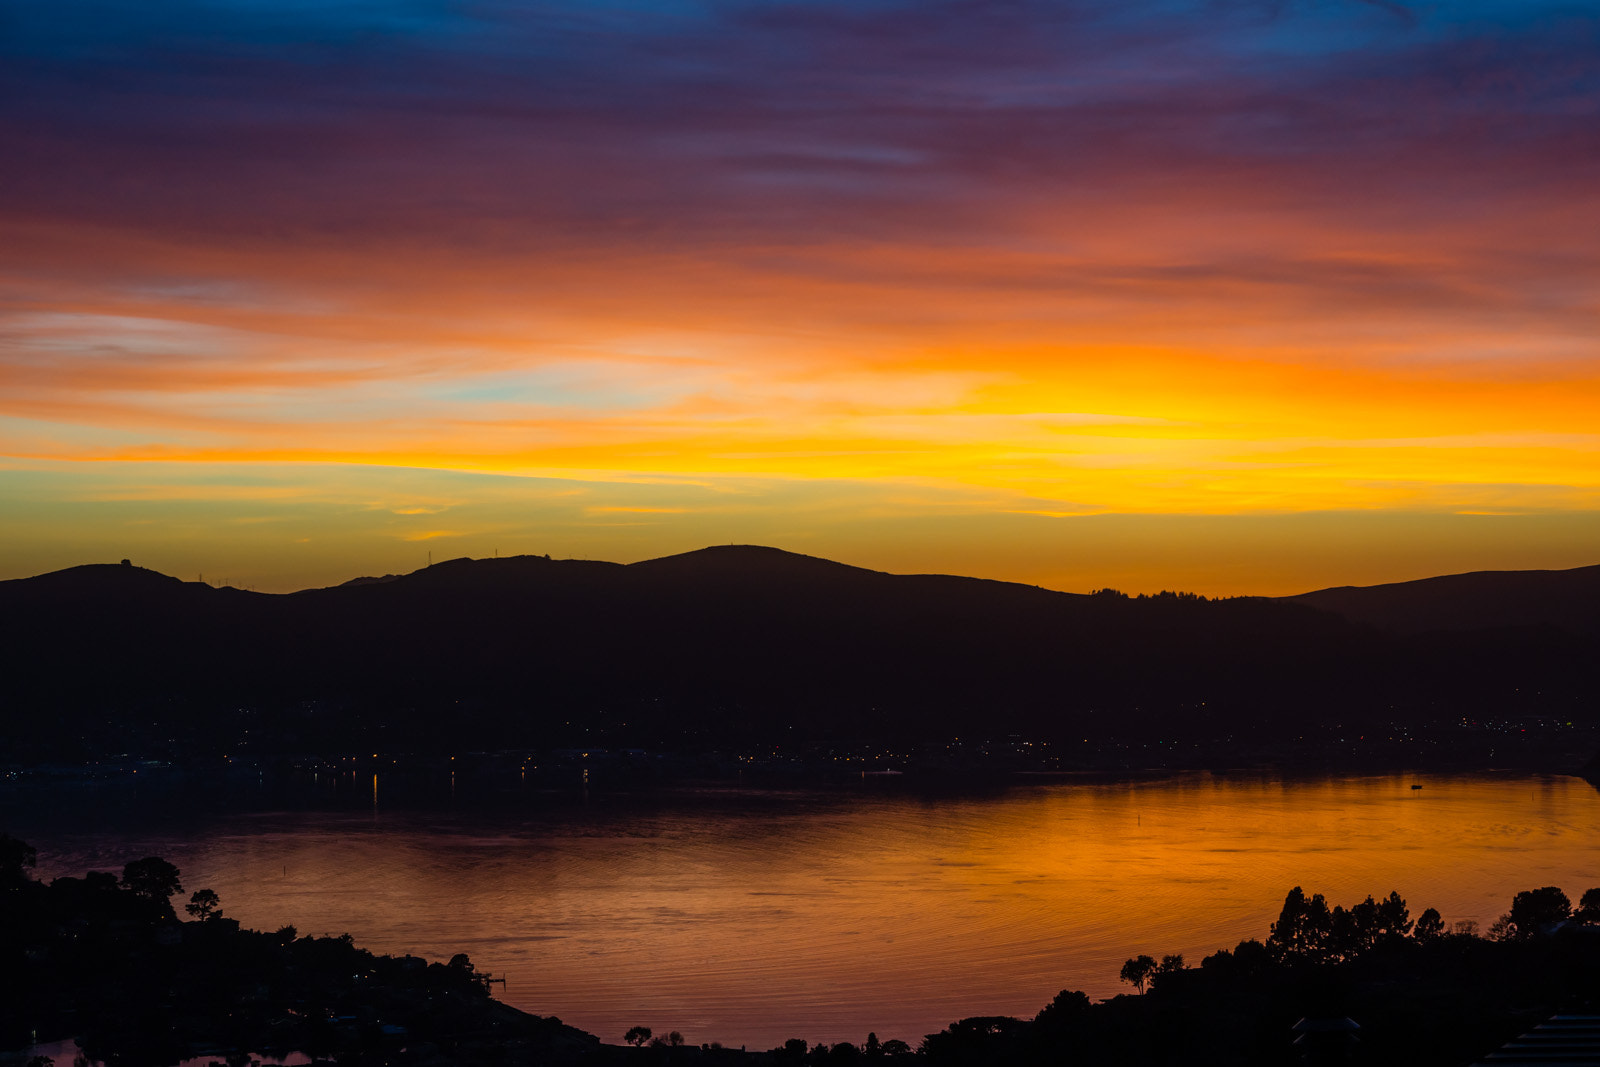 Photograph Winter Sunset over Sausalito by Rich Shelton on 500px